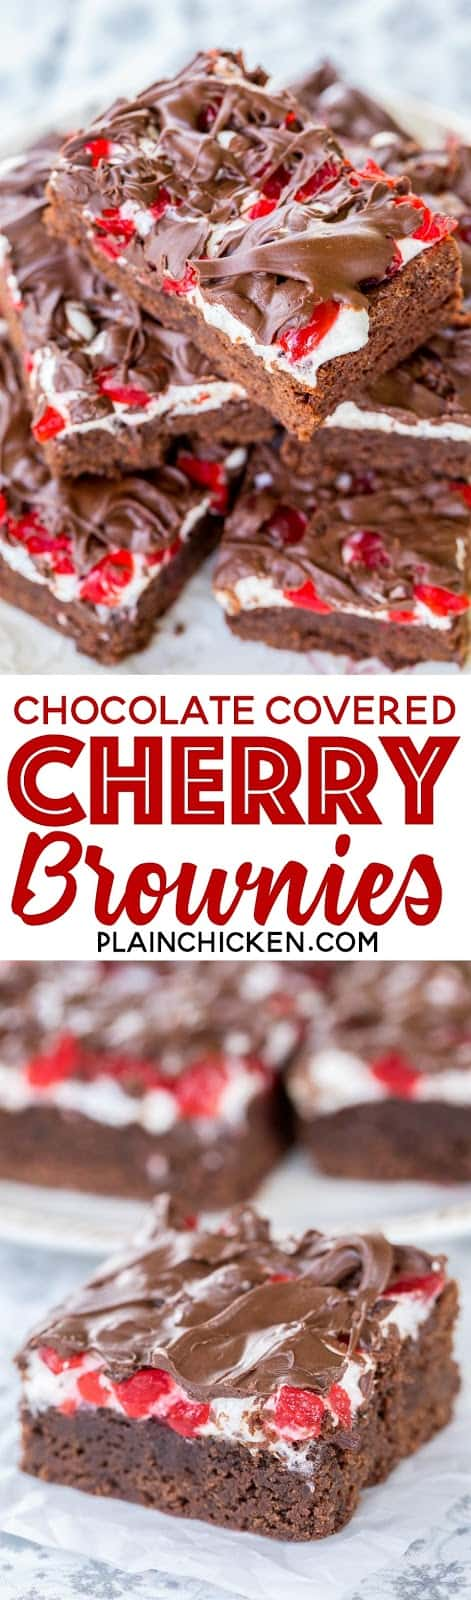 Chocolate Covered Cherry Brownies - seriously delicious!!! Homemade brownies topped with marshmallows, maraschino cherries and chocolate. Great for parties and a festive homemade holiday gift! I took these to a party and everyone asked for the recipe! SO good!!! Sugar, flour, cocoa, baking powder, salt, butter, eggs, marshmallows, maraschino cherries and chocolate chips. #brownies #christmasrecipes #dessertrecipe #dessert